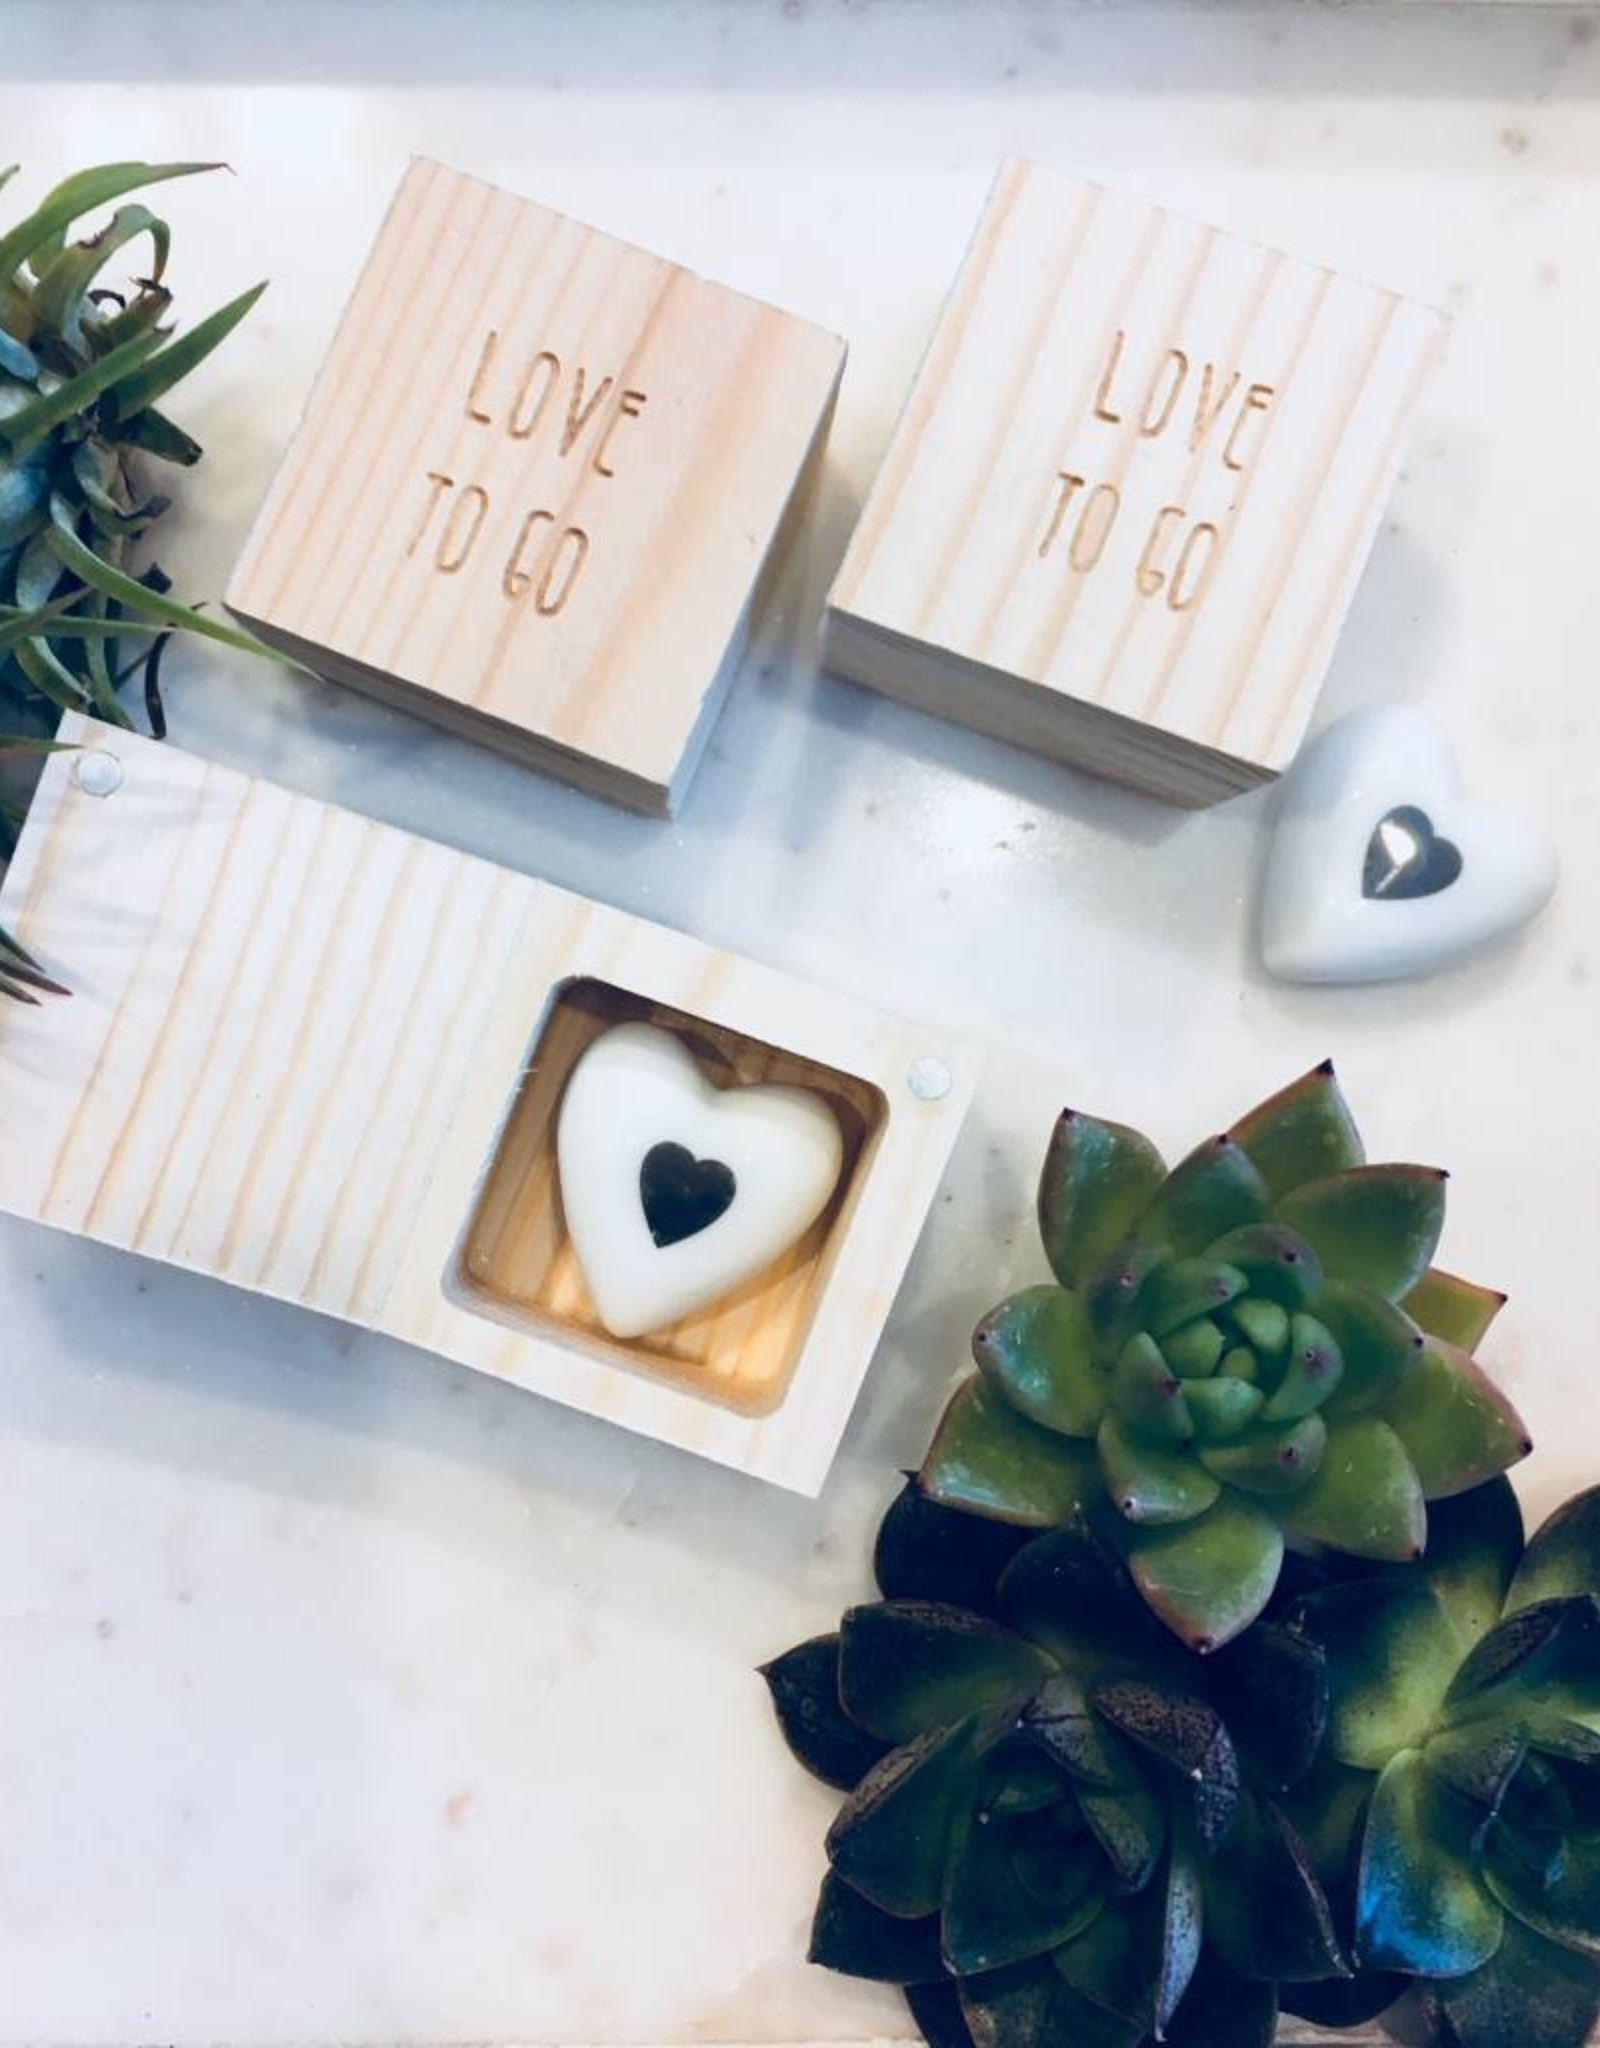 Räder Rader- Love to go - wooden box